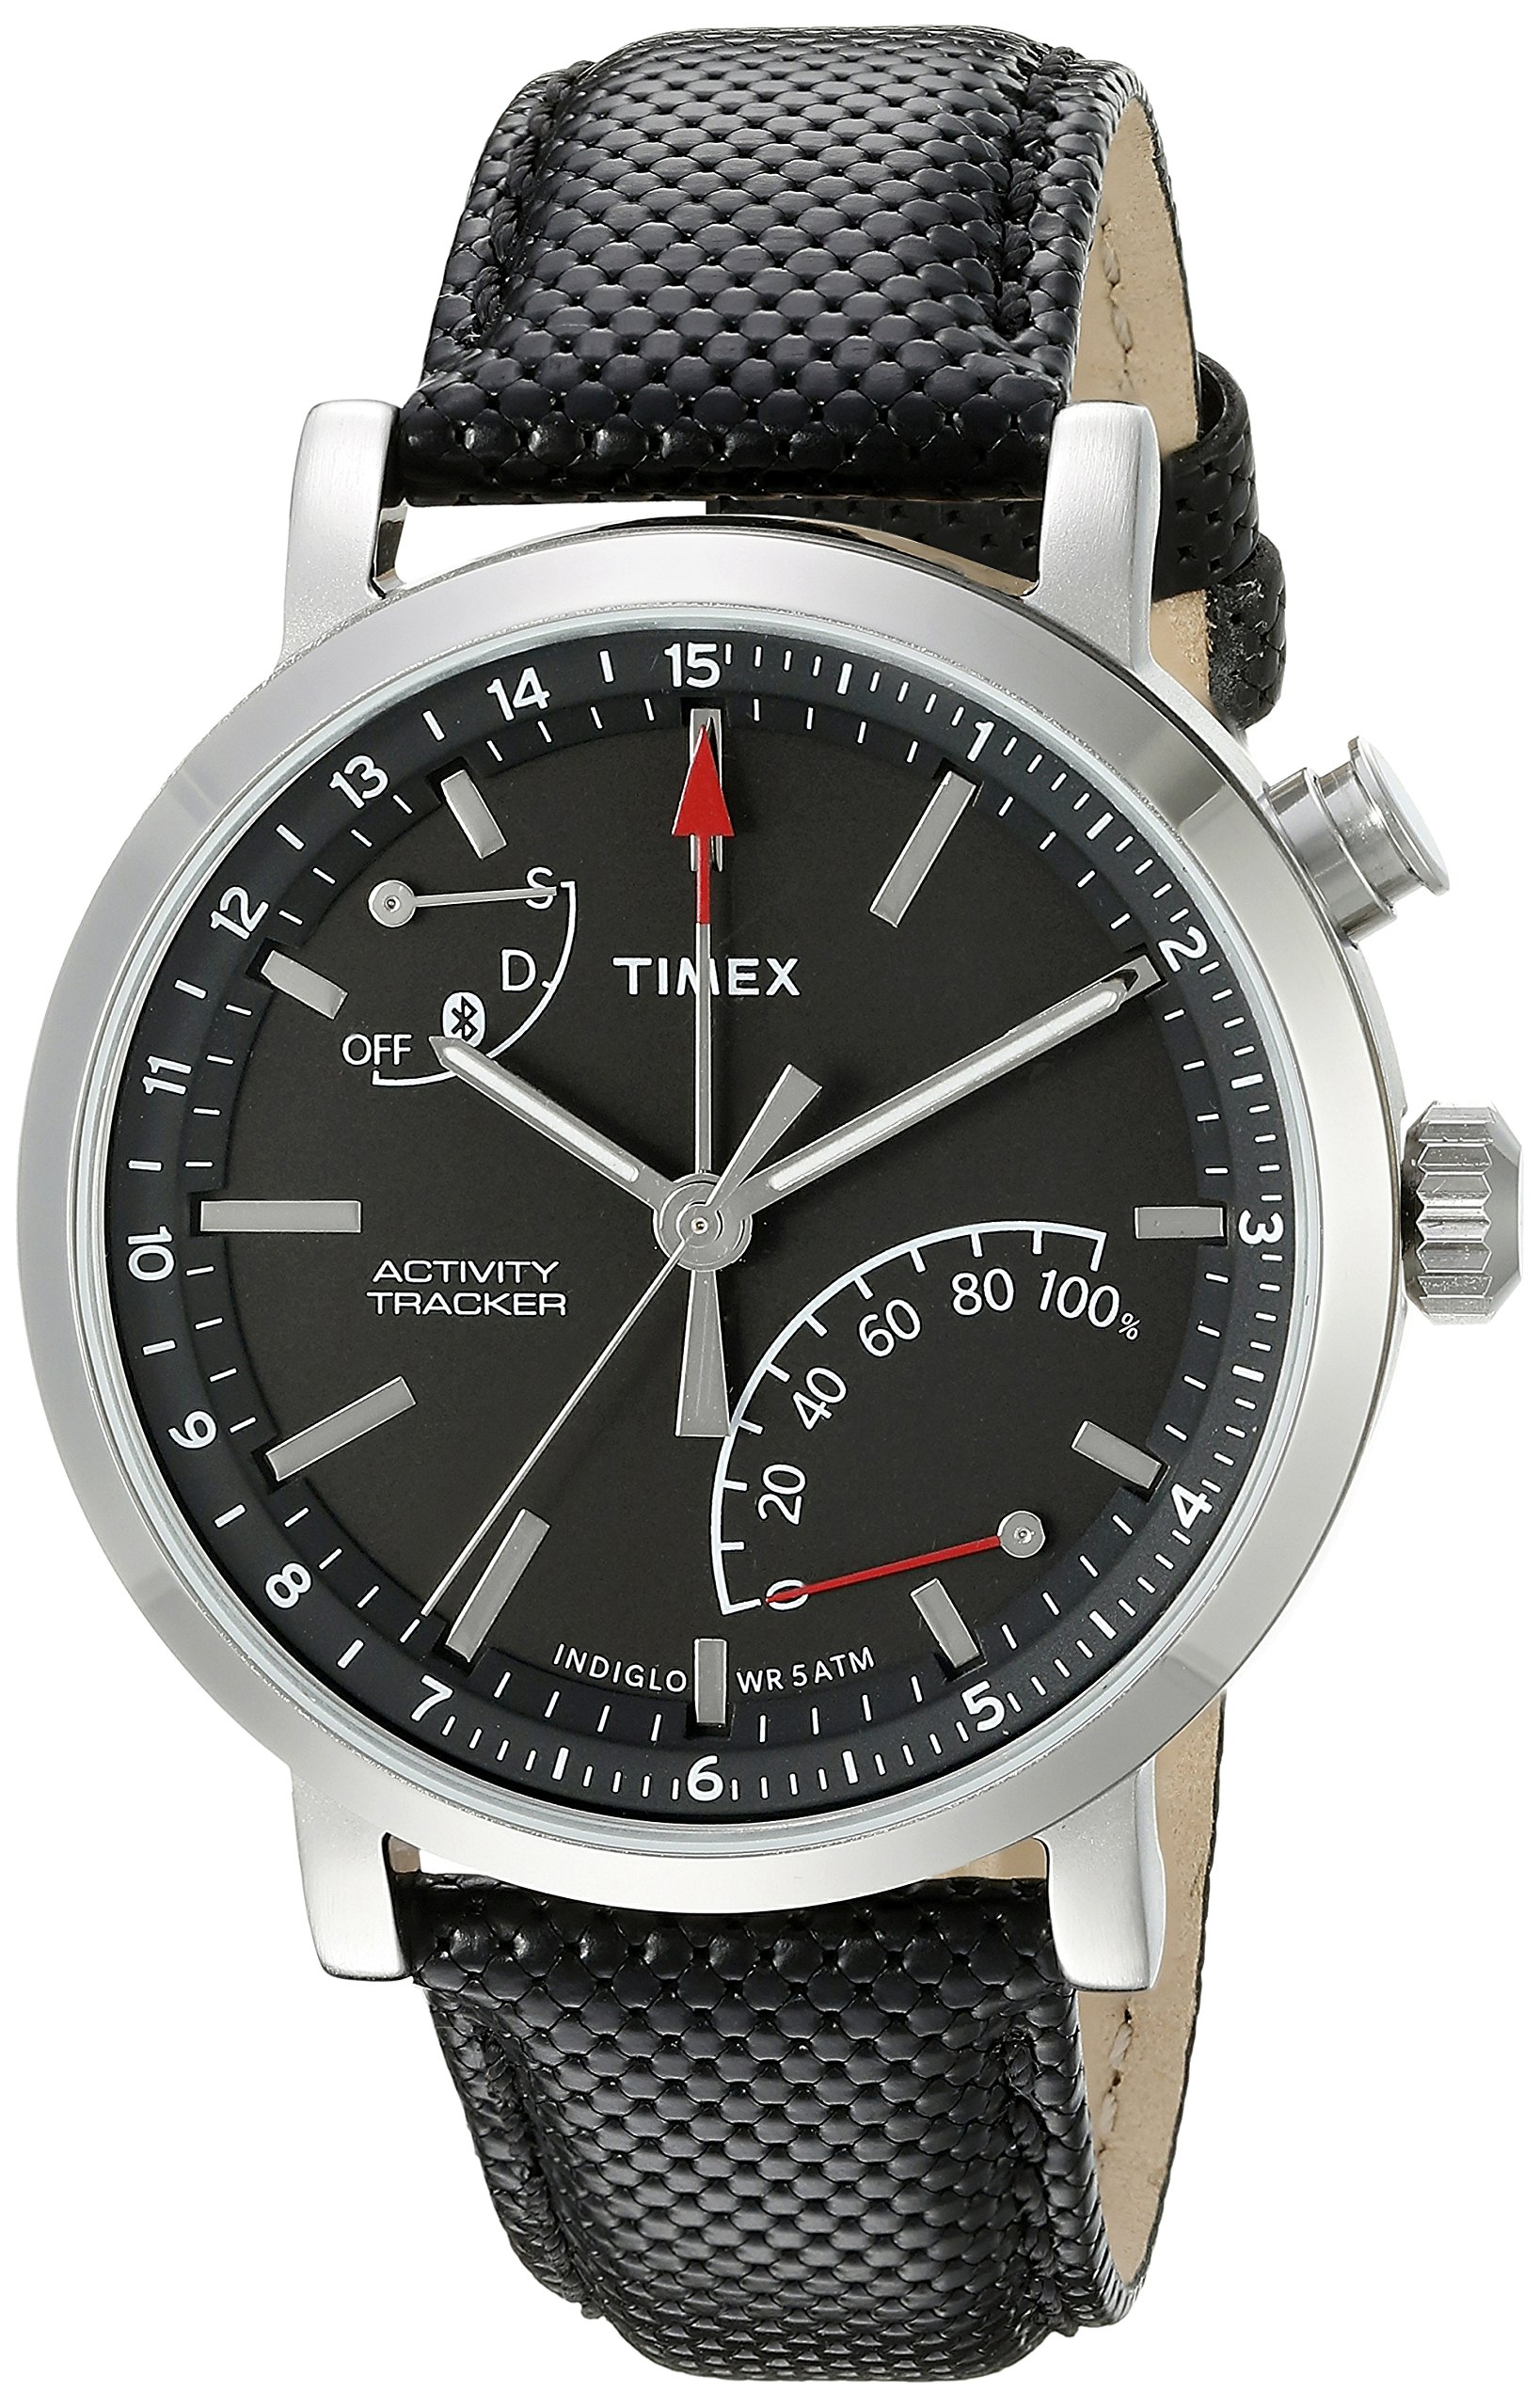 Timex Unisex TW2P81700 Metropolitan+ Activity Tracker Watch with Black Leather Strap by Timex